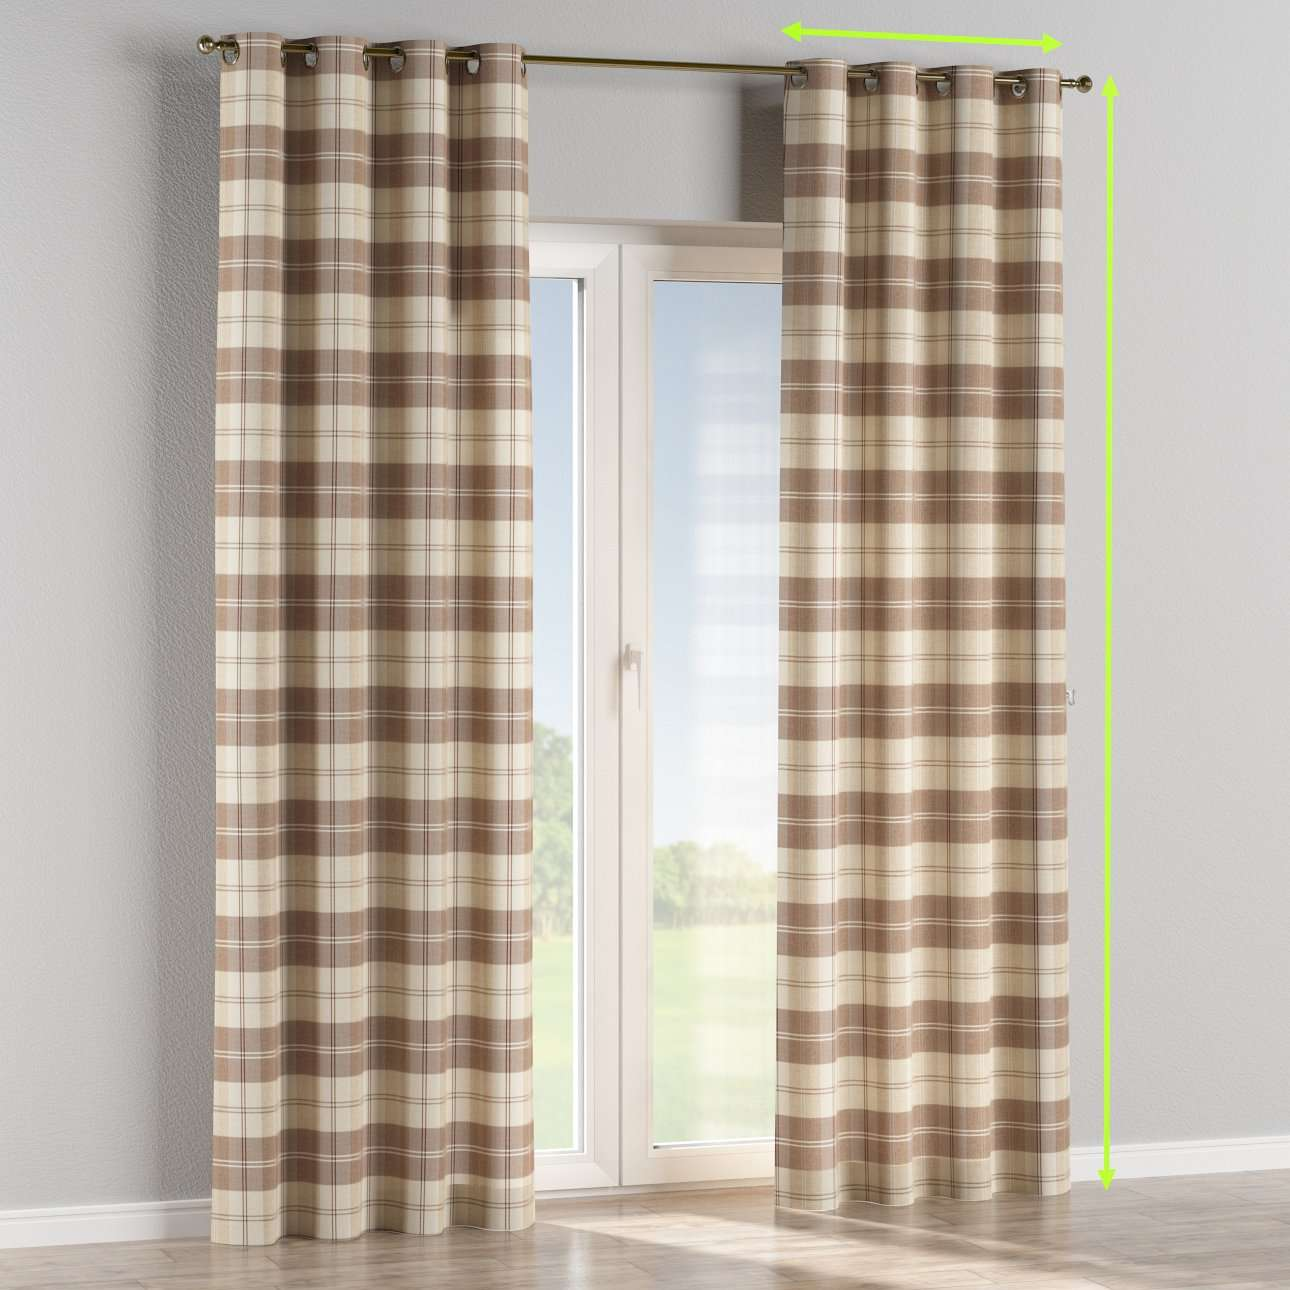 Eyelet lined curtains in collection Edinburgh, fabric: 115-80